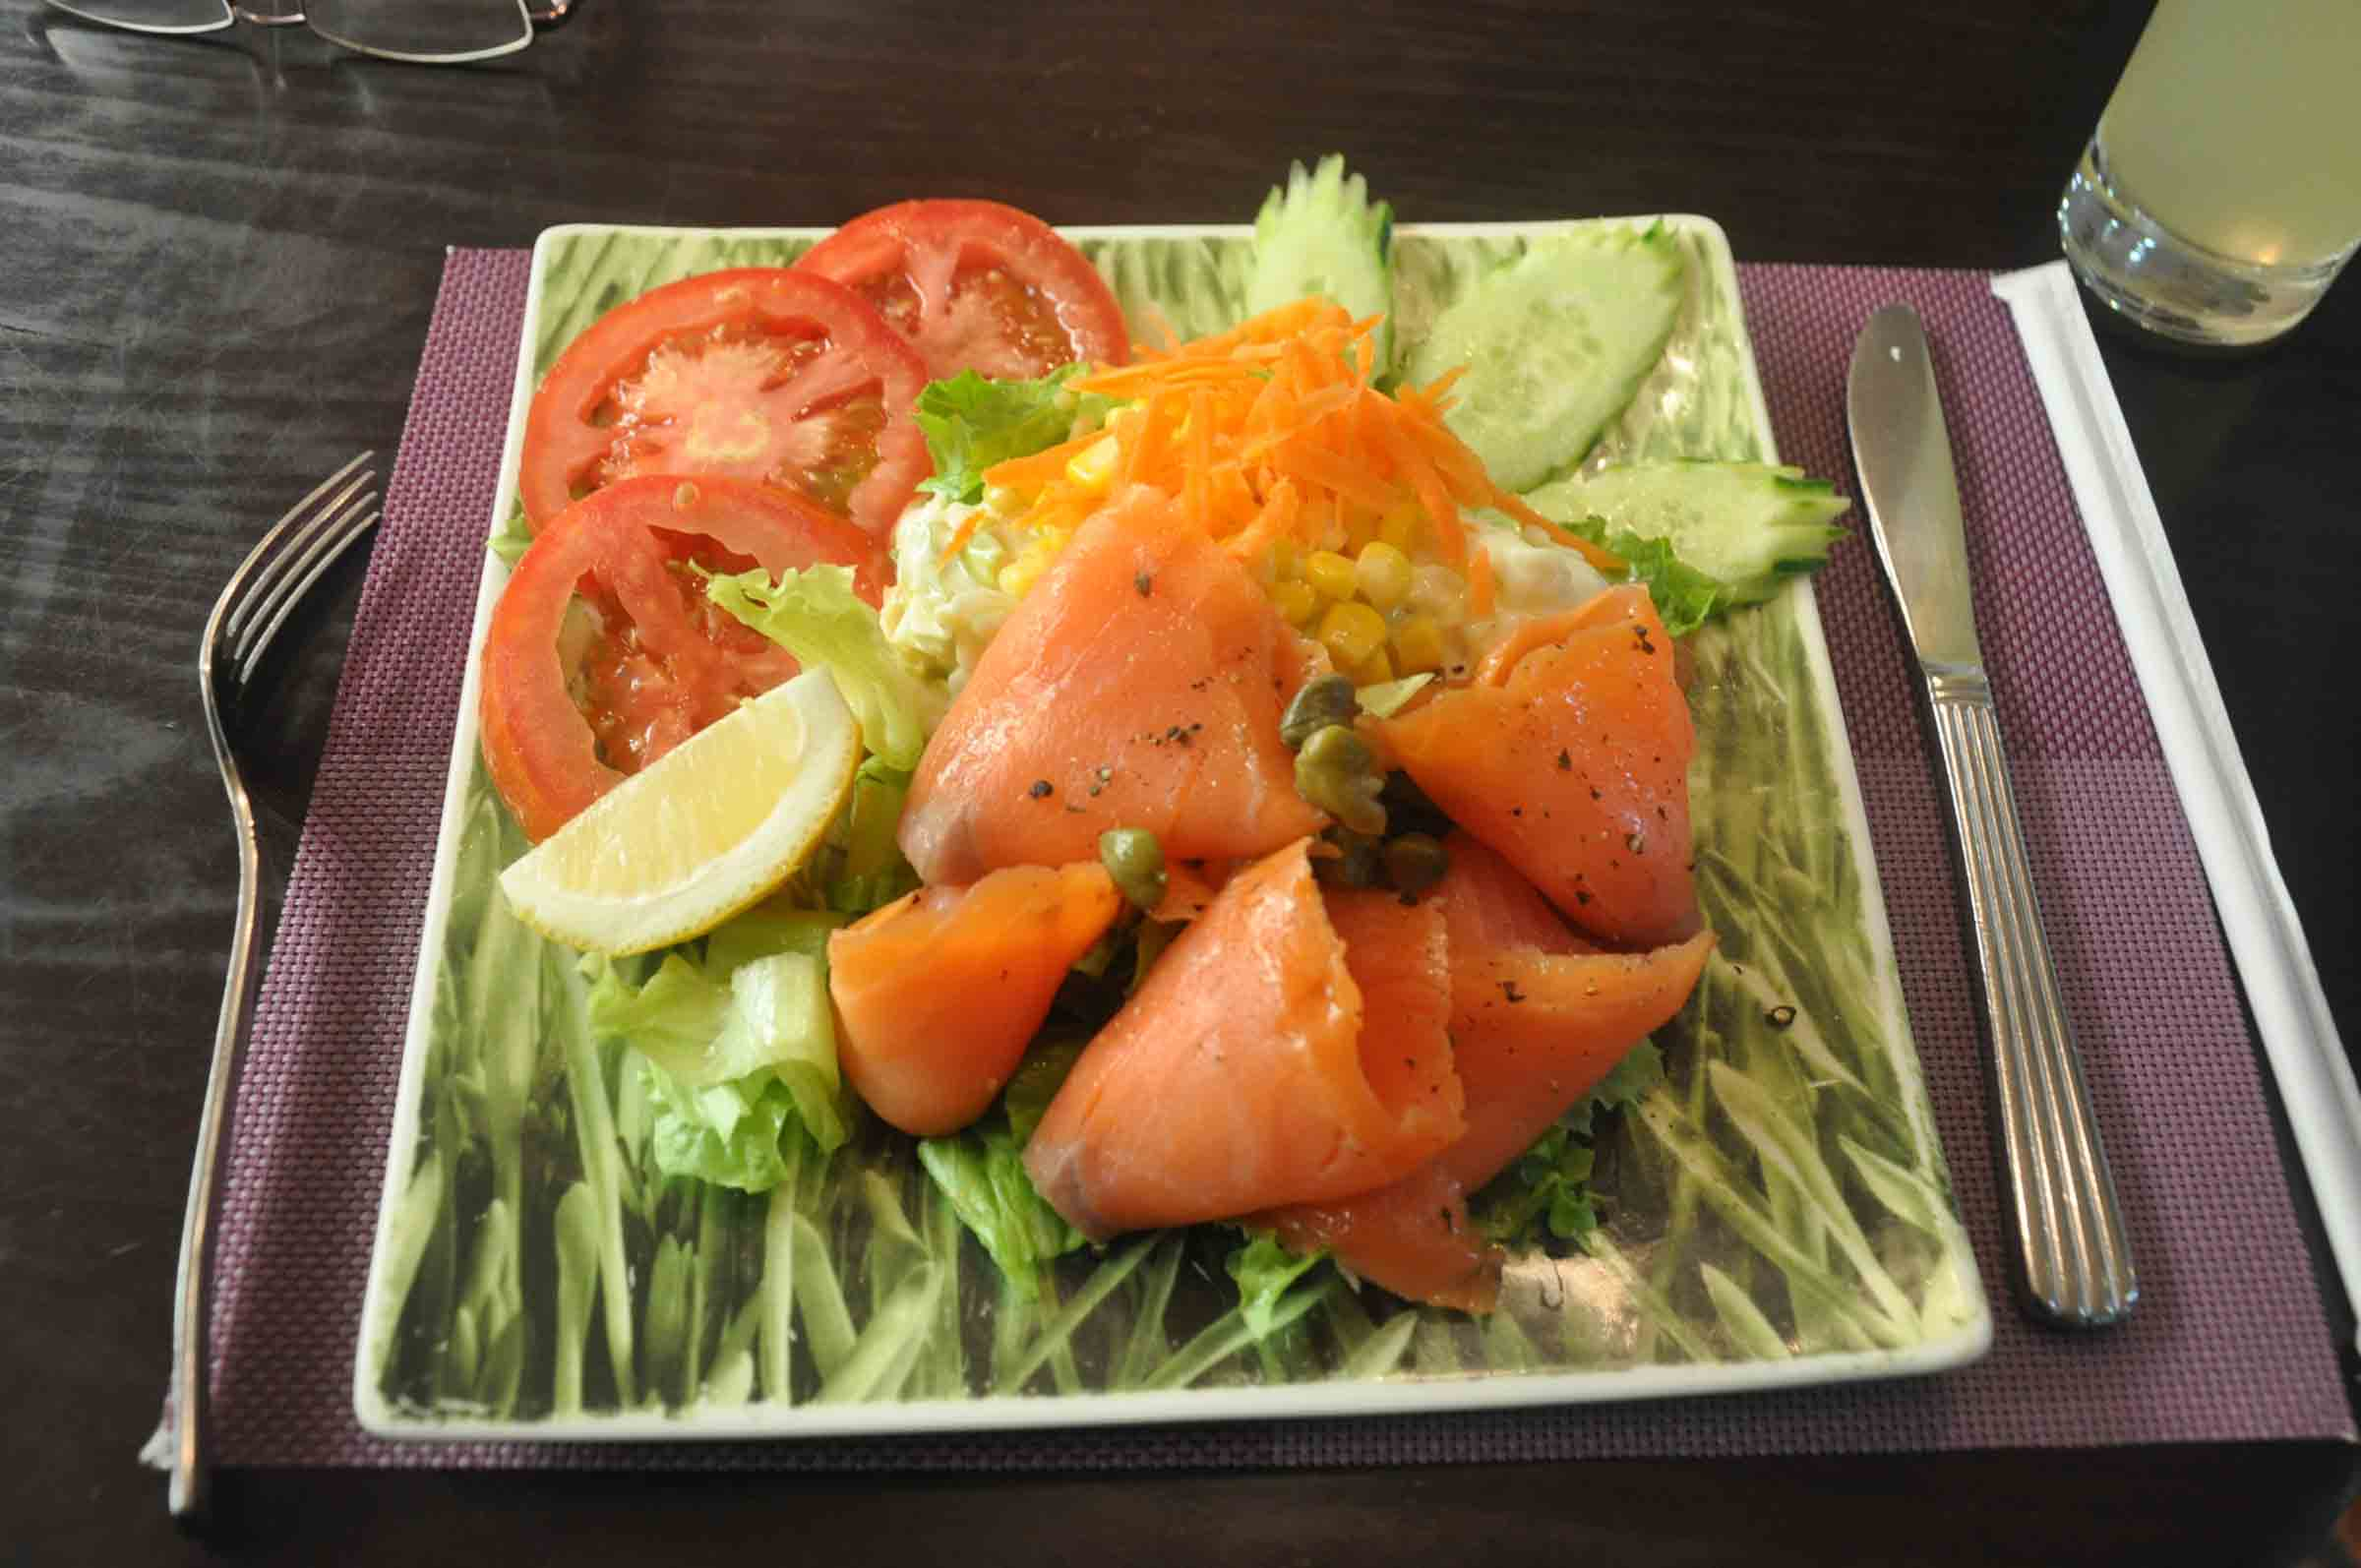 Lord Stows Garden Cafe smoked salmon salad